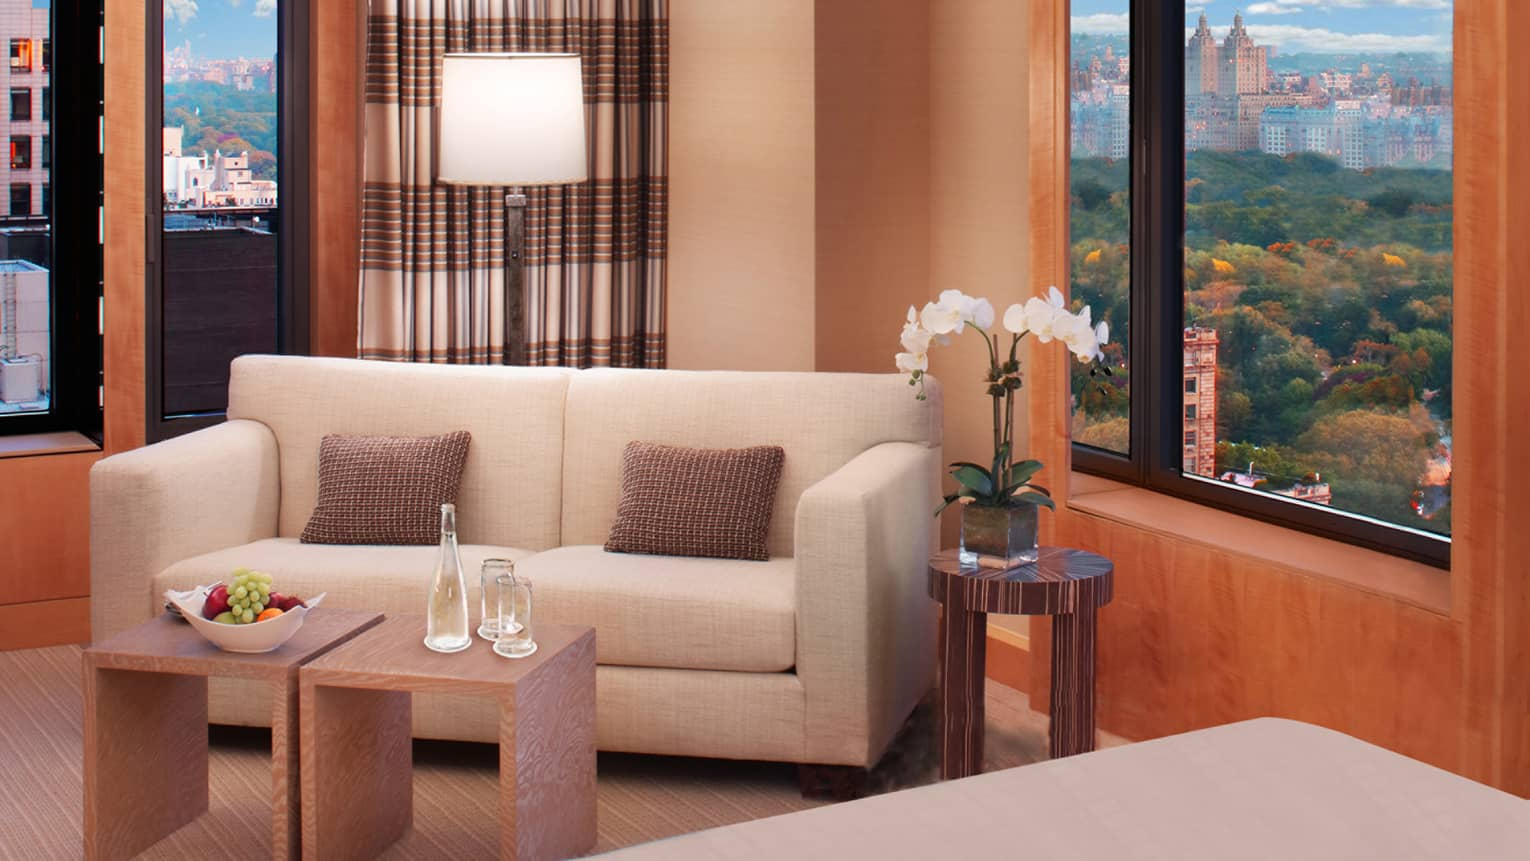 Corner suite with white loveseat sofa, small modern tables with fresh fruit, water, white orchid